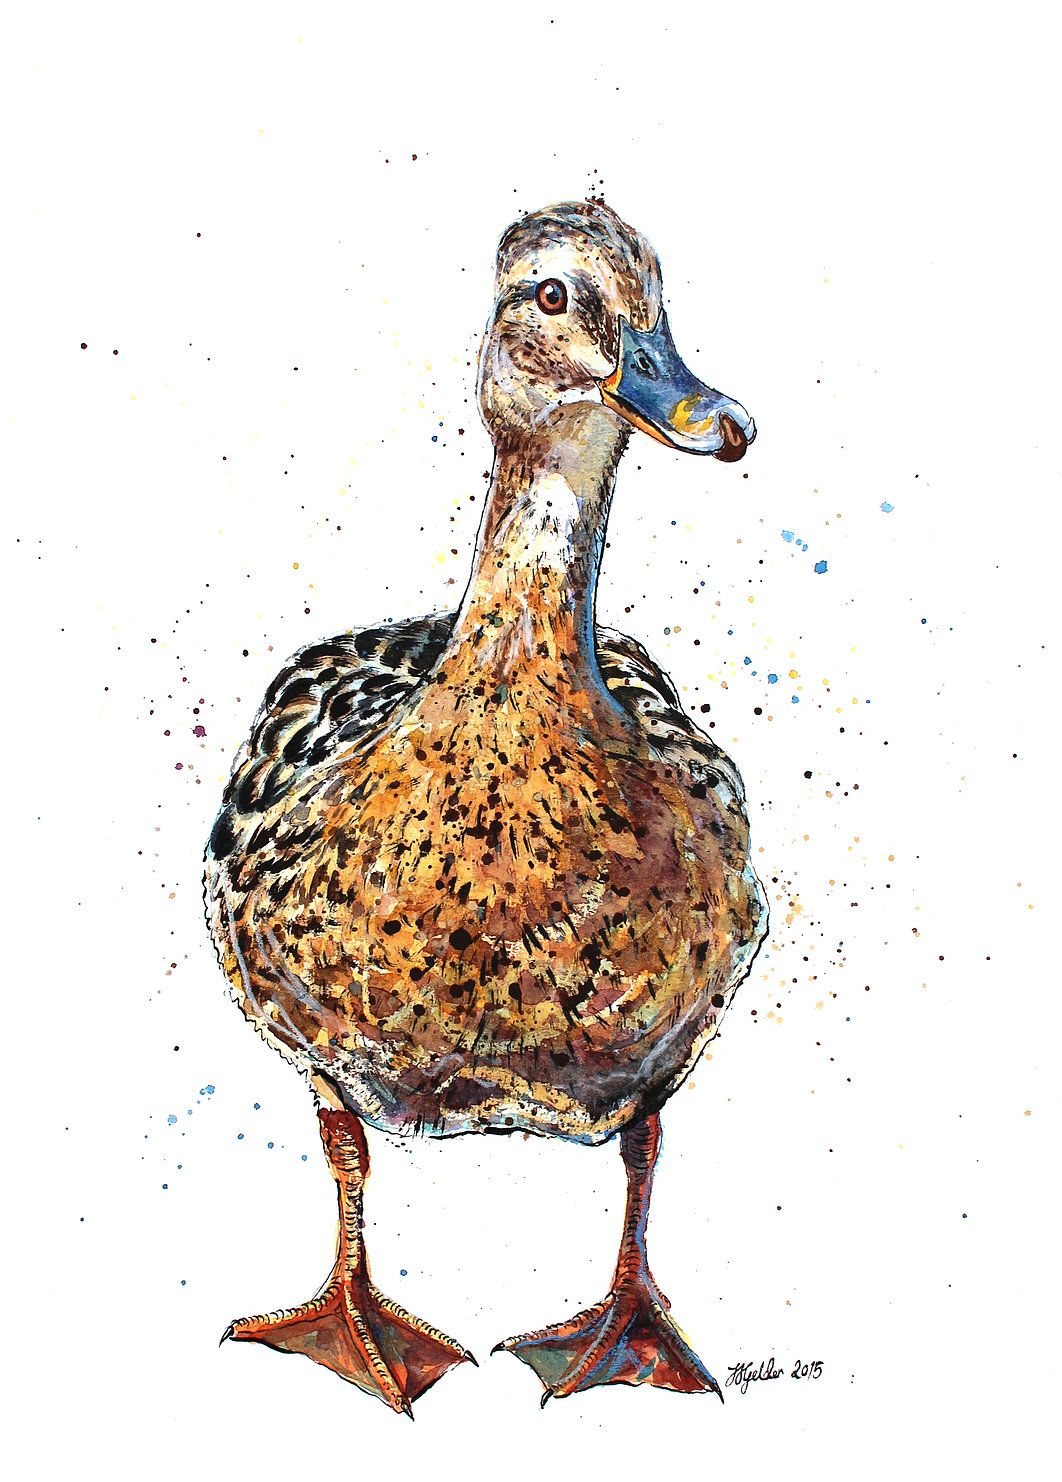 Puddle Animal Art Birds Painting Drawings